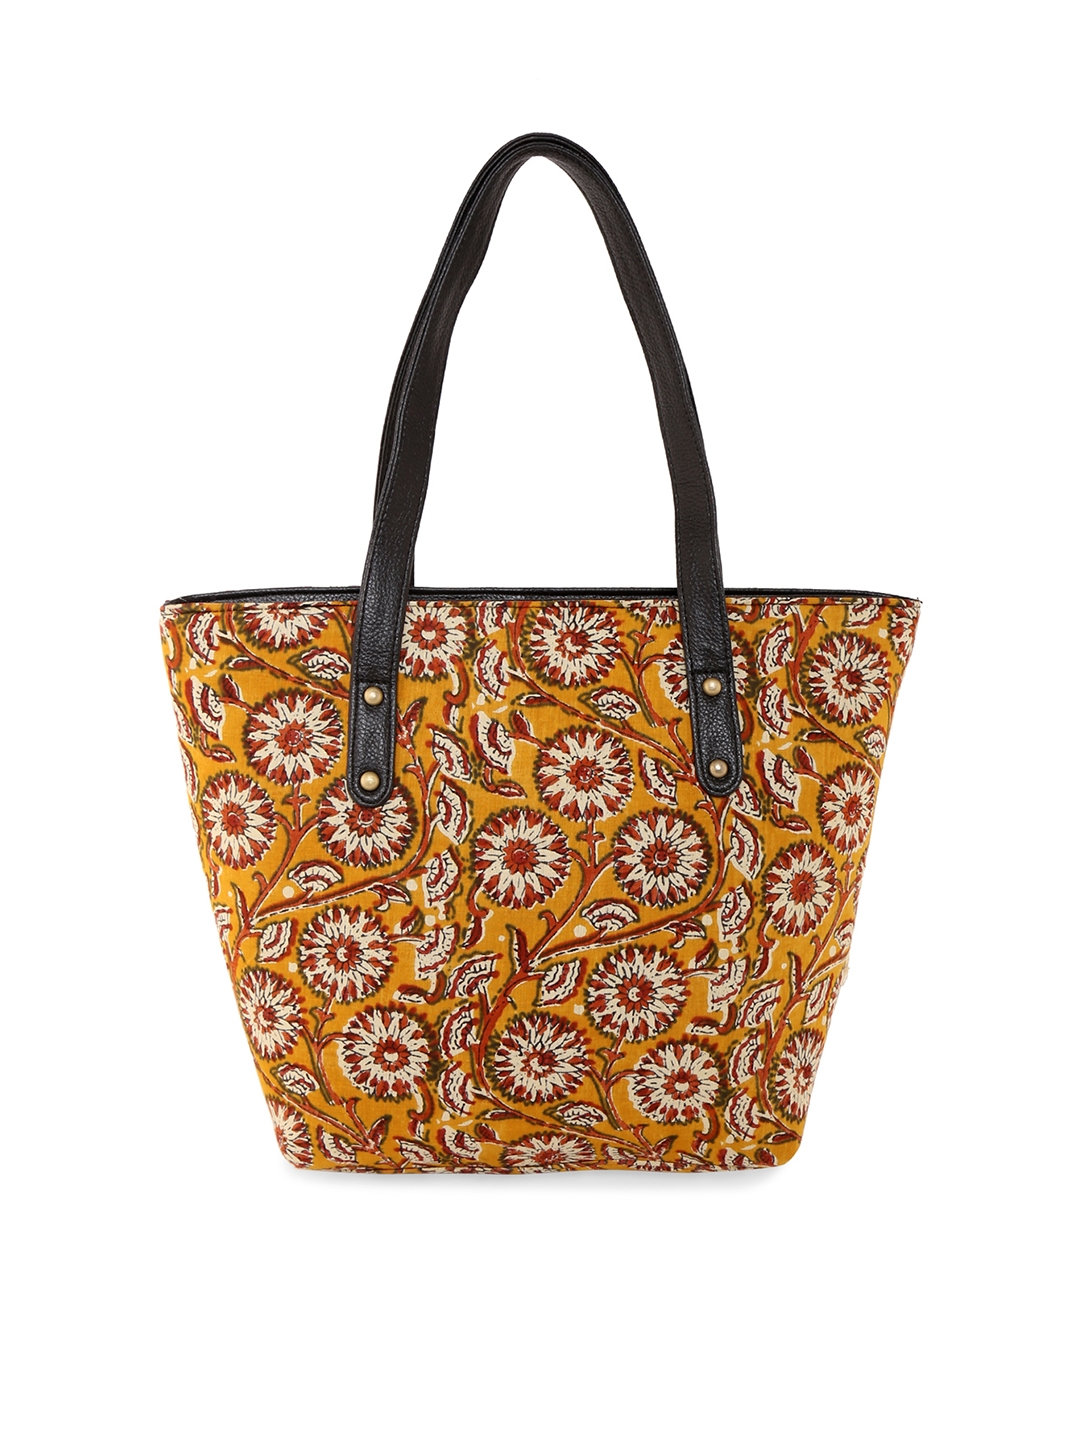 4fbb0d50274 Buy Vivinkaa Mustard Printed Tote Bag - Handbags for Women 6718605 ...